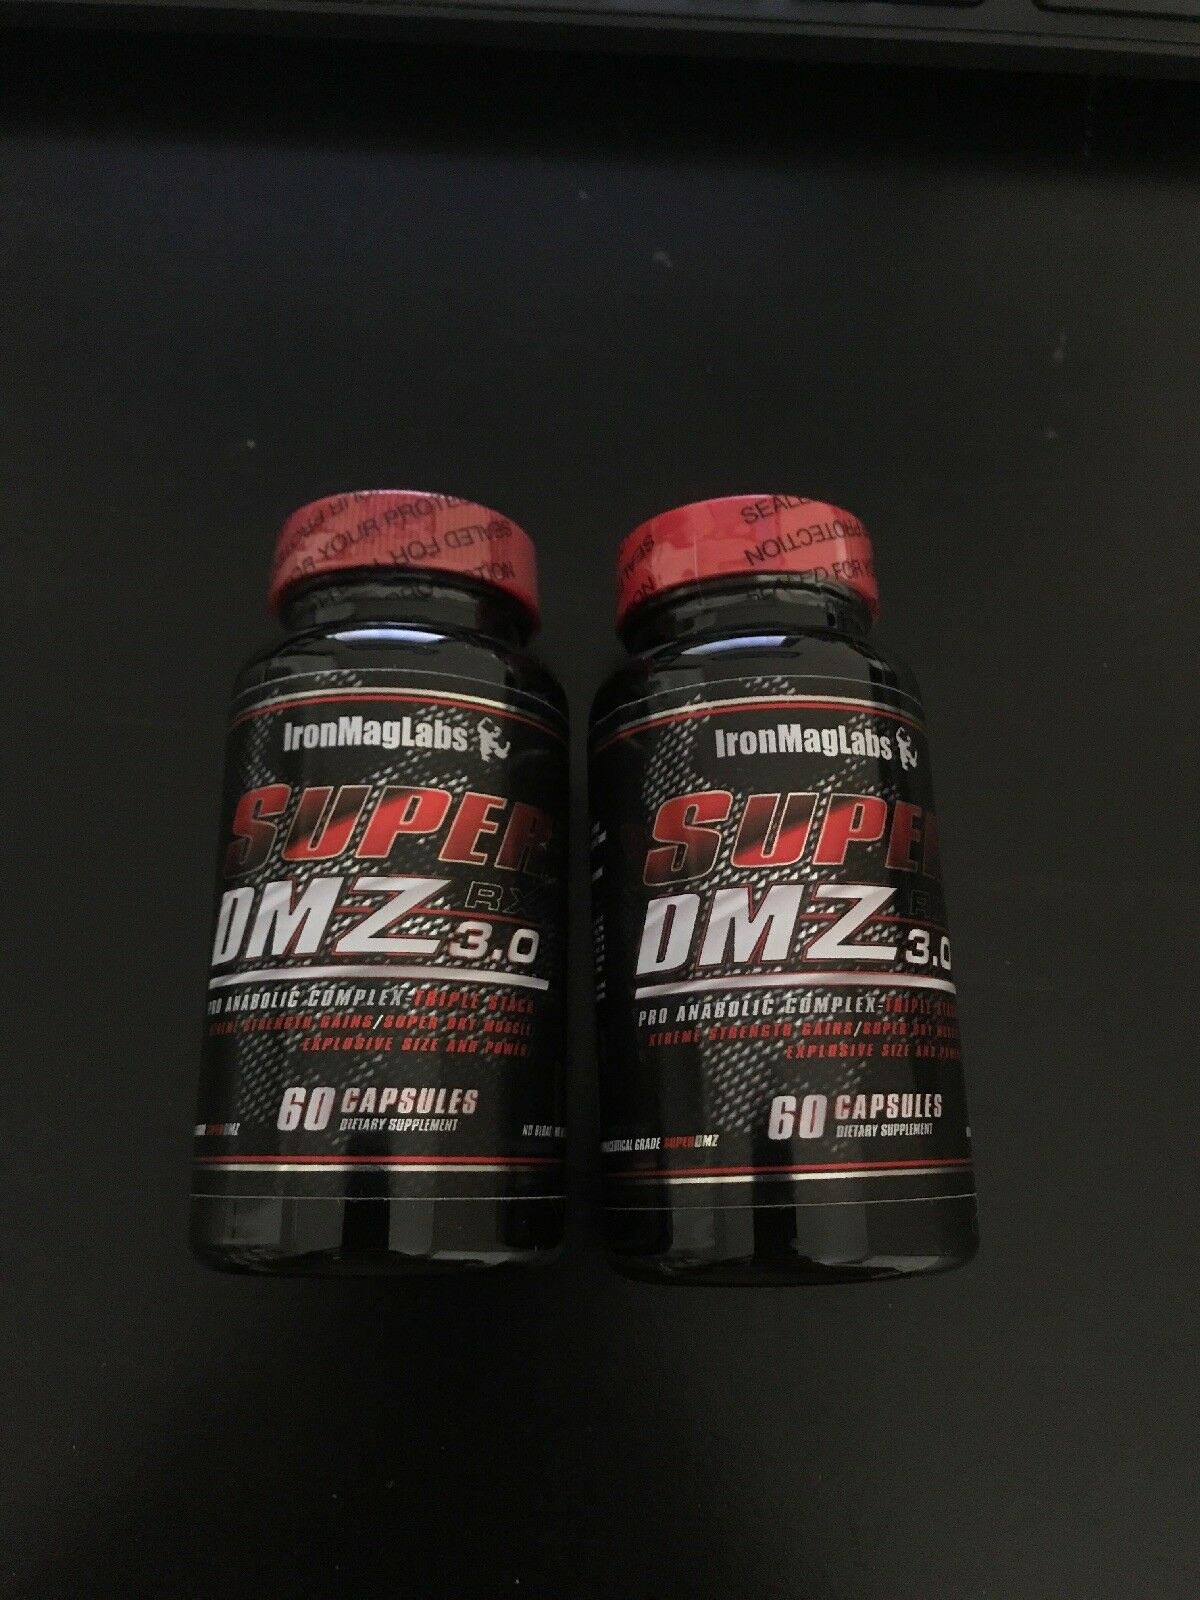 (2) Bottle IronMagLabs Super DMZ 3.0 Iron Mag Labs IML